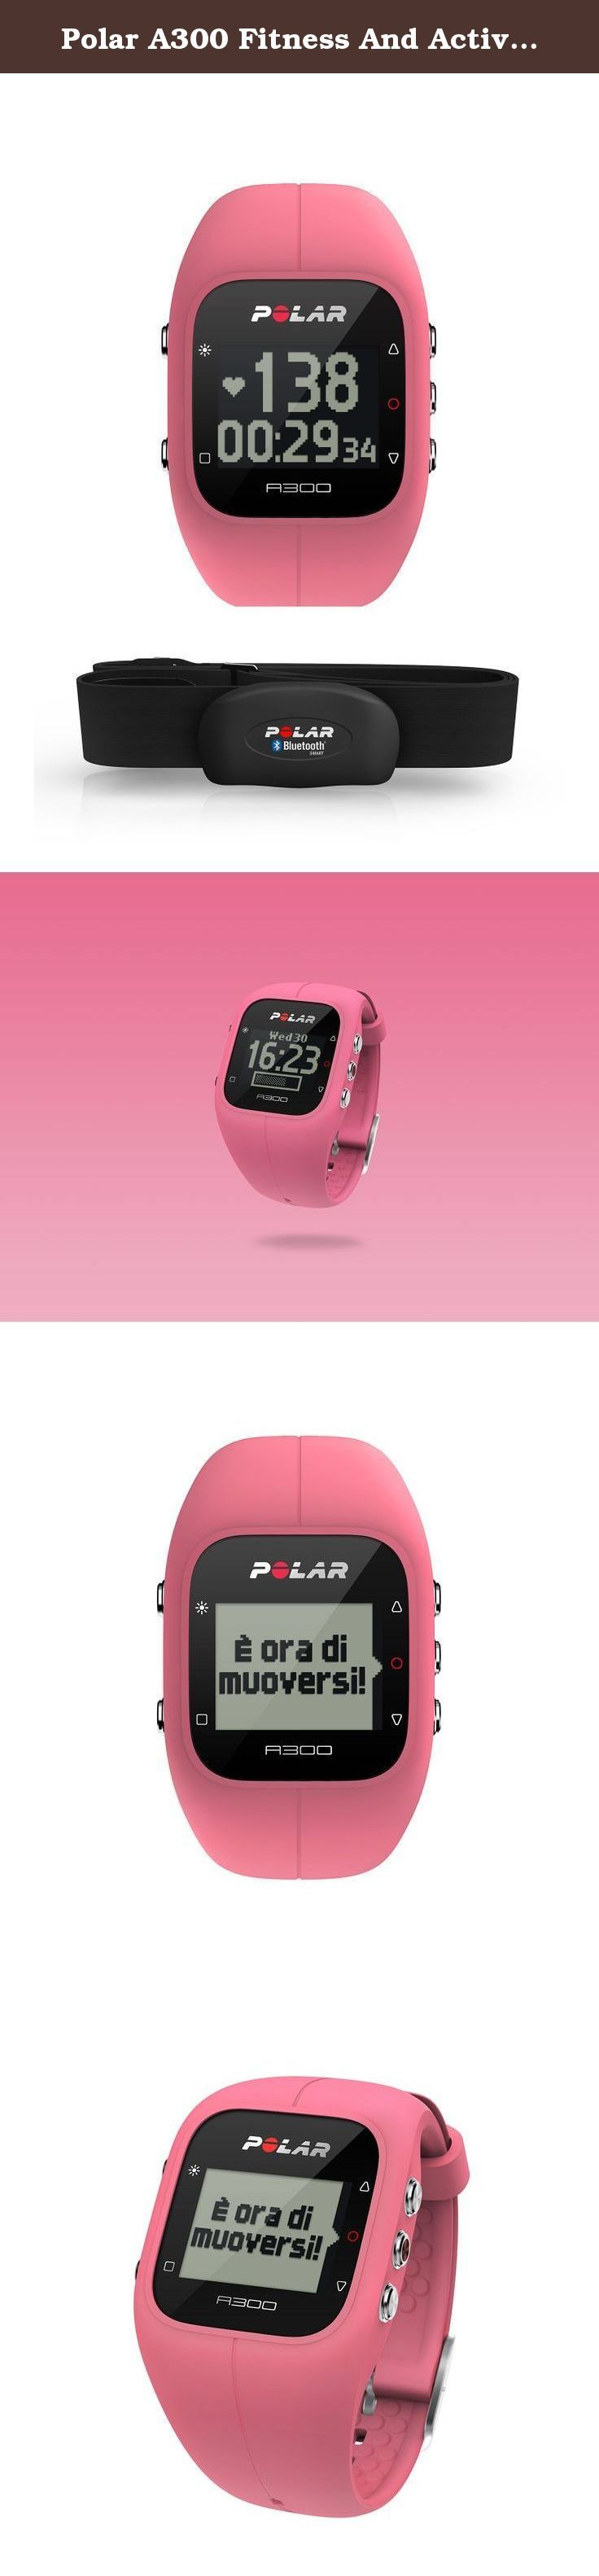 Polar A300 Fitness And Activity Monitor With Heart Rate Monitor - One - Pink. Match your mood and style with vibrantly coloured, easy-to-change wristbands. The durable silicone wristband of the waterproof A300 is light and comfortable to wear. The A300 shows your steps, distance, and burned calories, and motivates you to reach your activity goal. Train to your own beat with Polar H7 heart rate sensor and make sure your every move is counted for. The A300 automatically clocks both the…